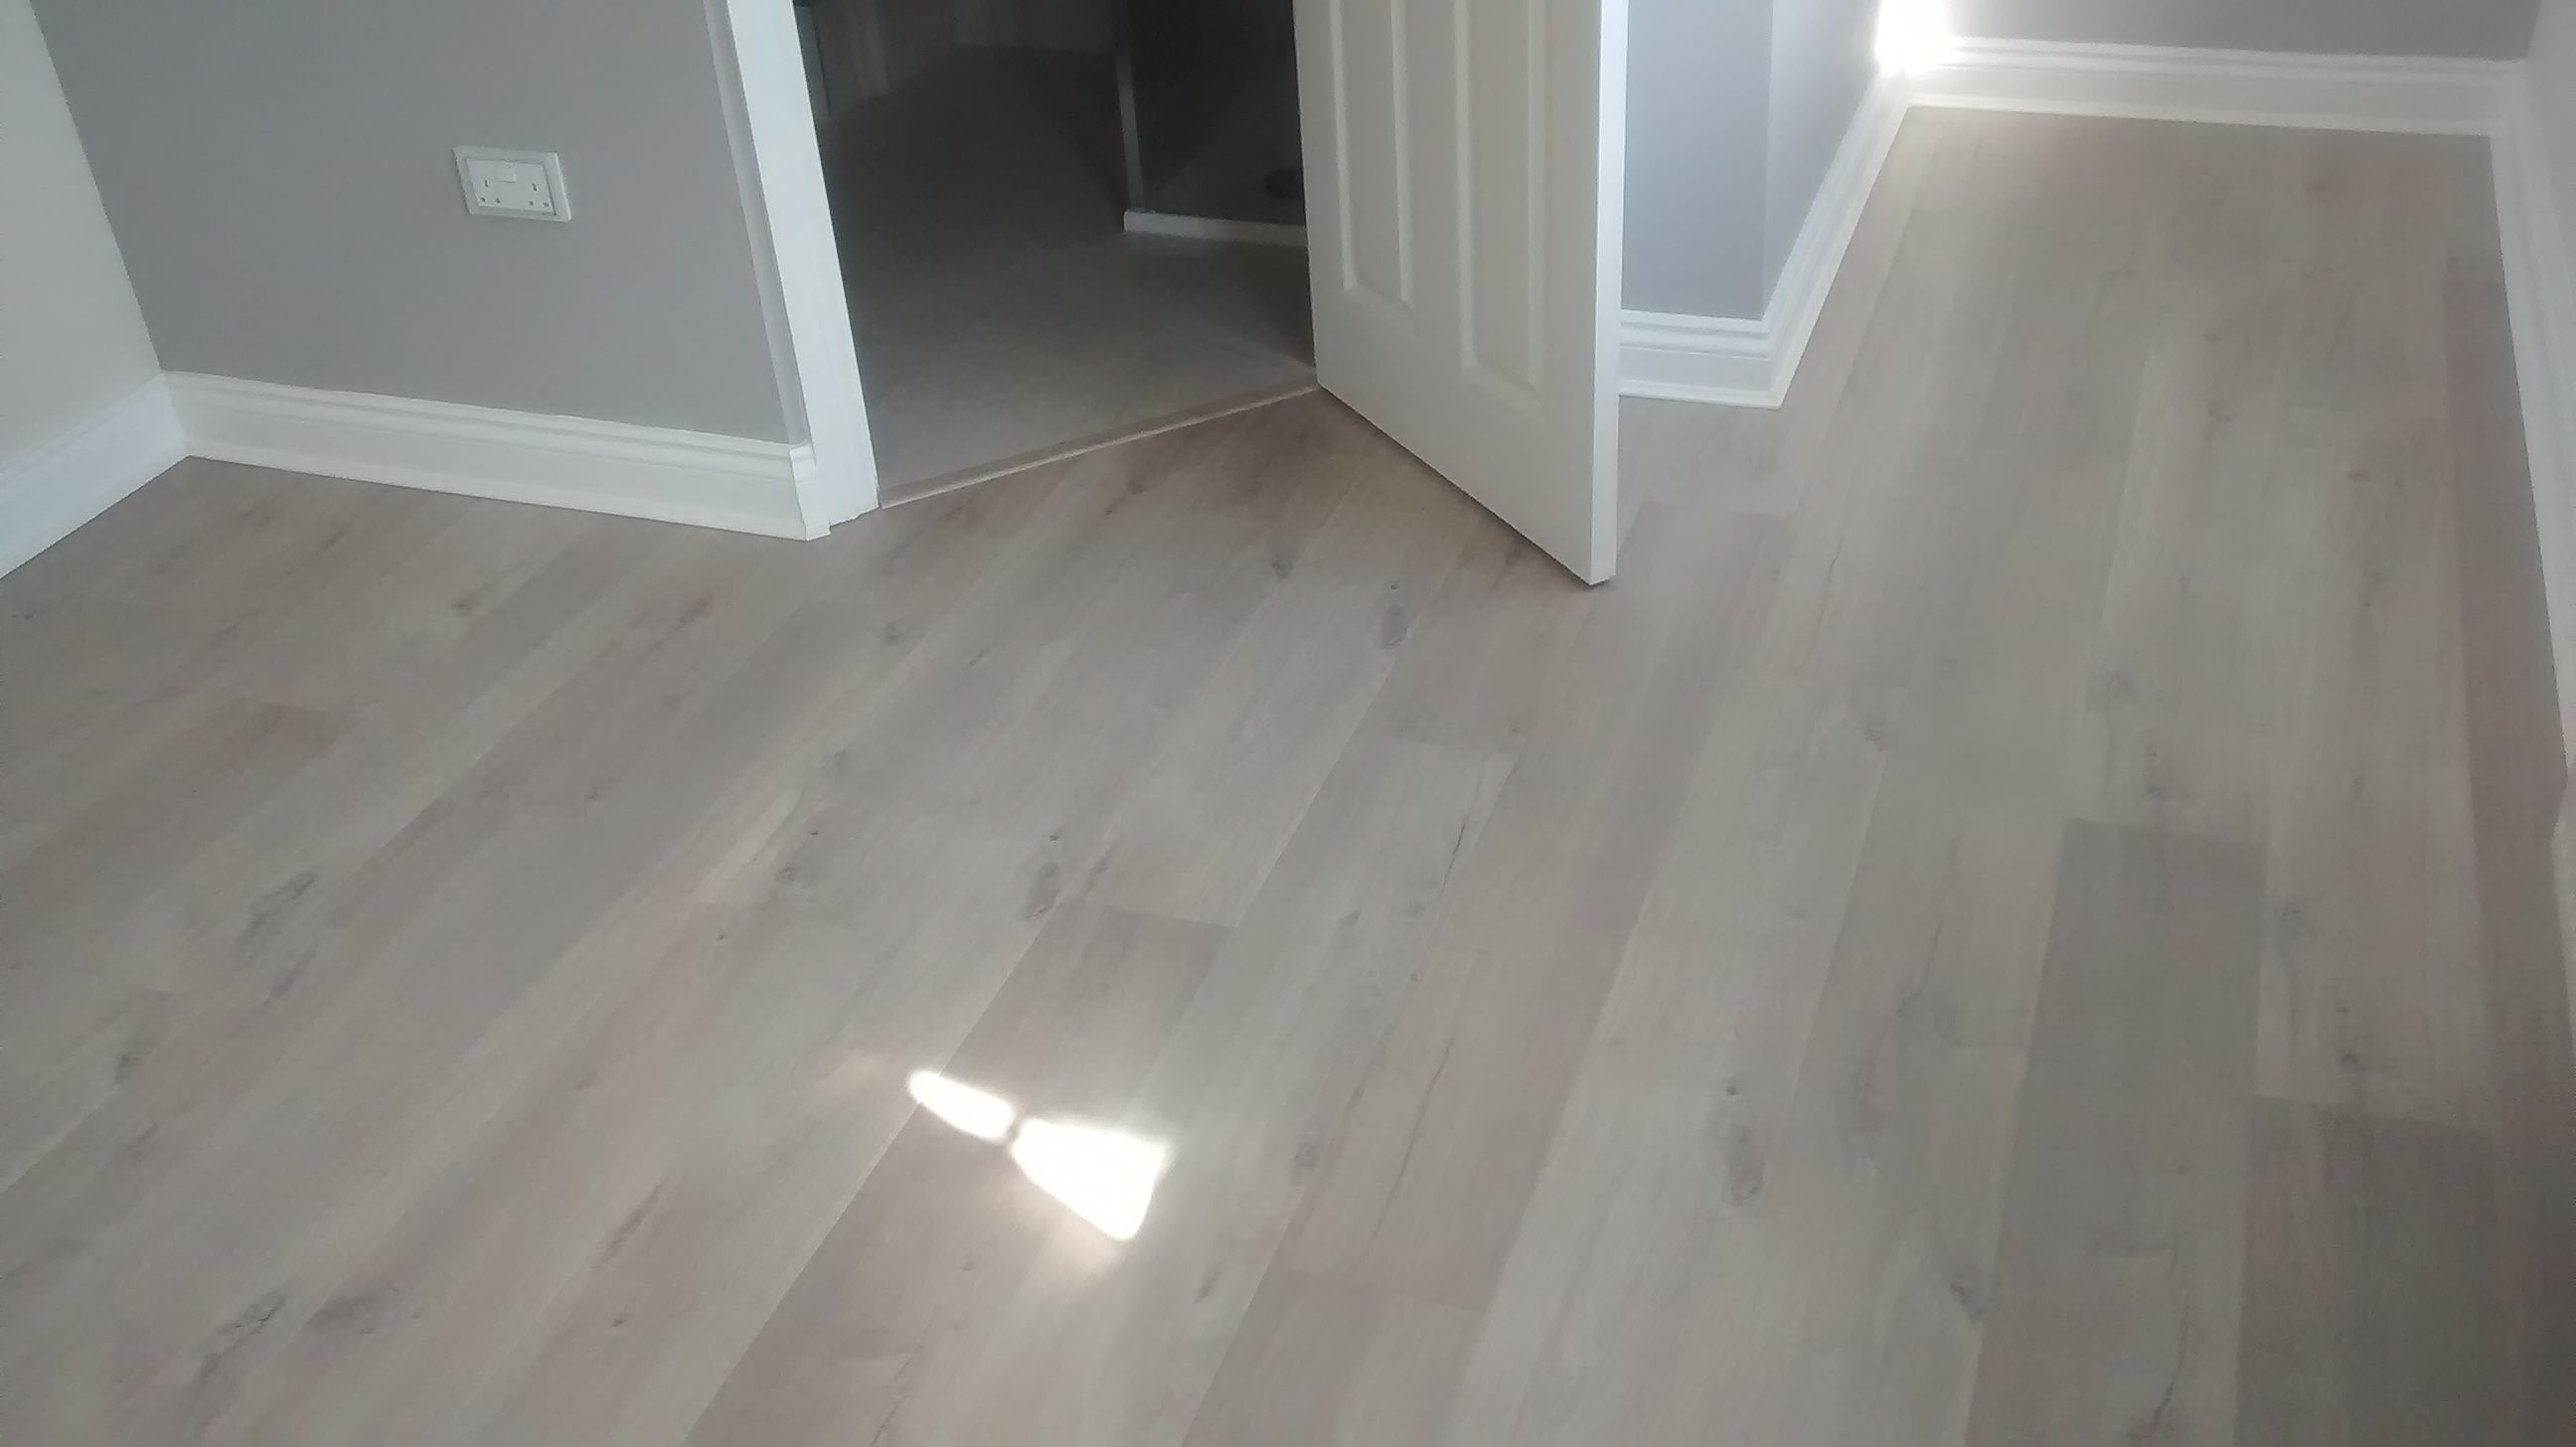 Pin by Anne on flooring ideas (With images) Flooring